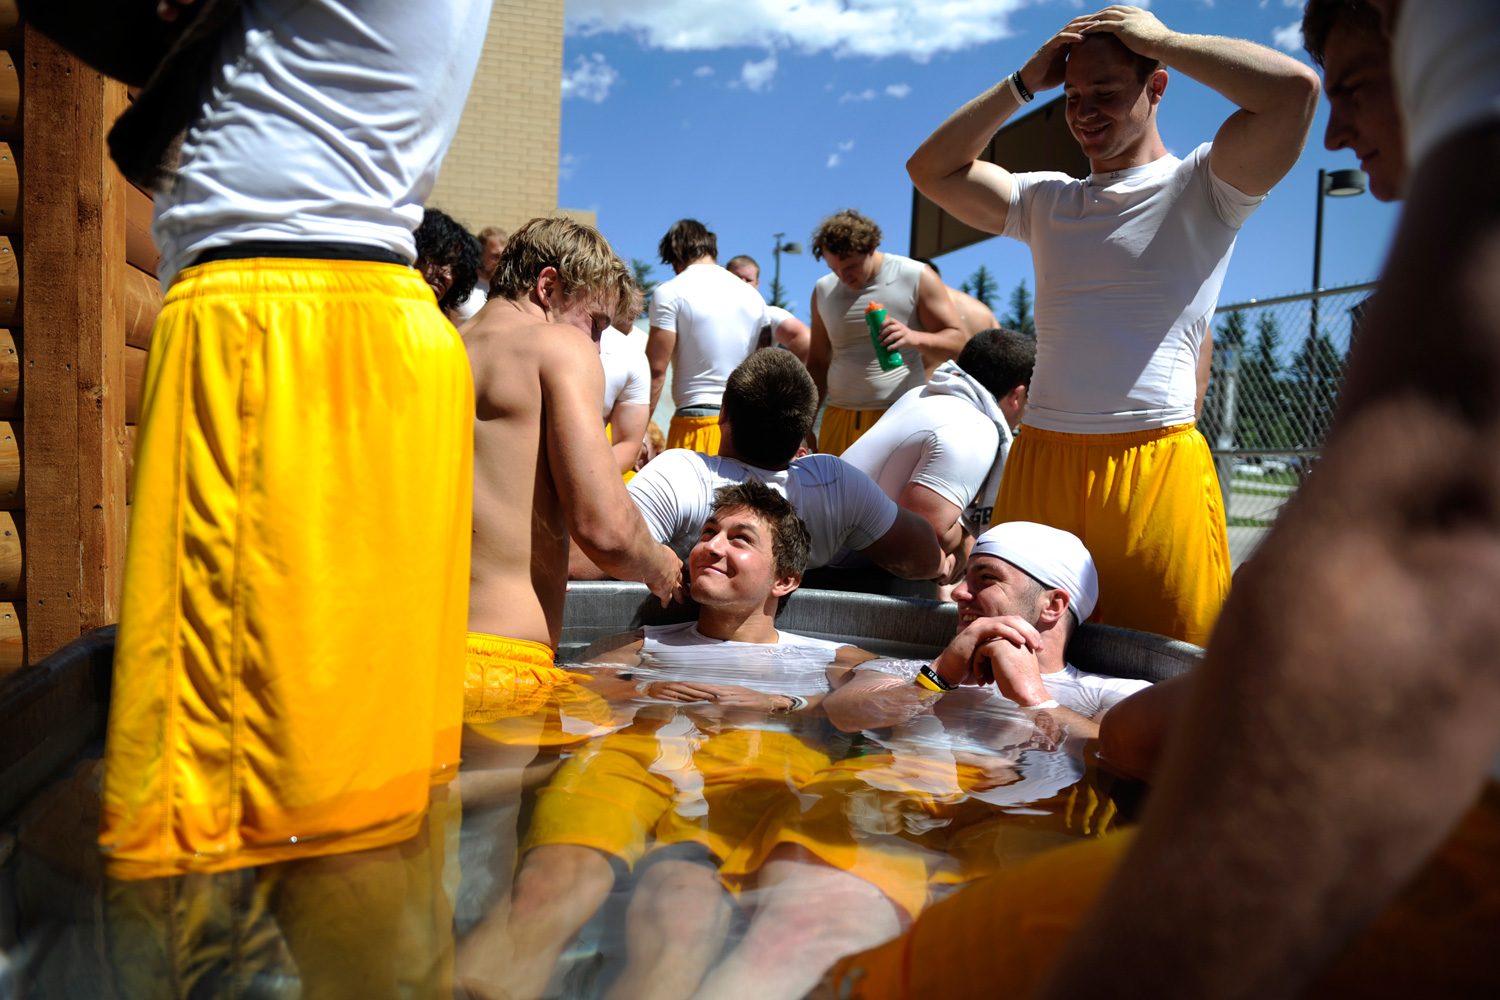 Wyoming wide receiver Sam Stratton (C) jokes with teammates as they take an ice bath at War Memorial Stadium in Laramie, Wyoming.